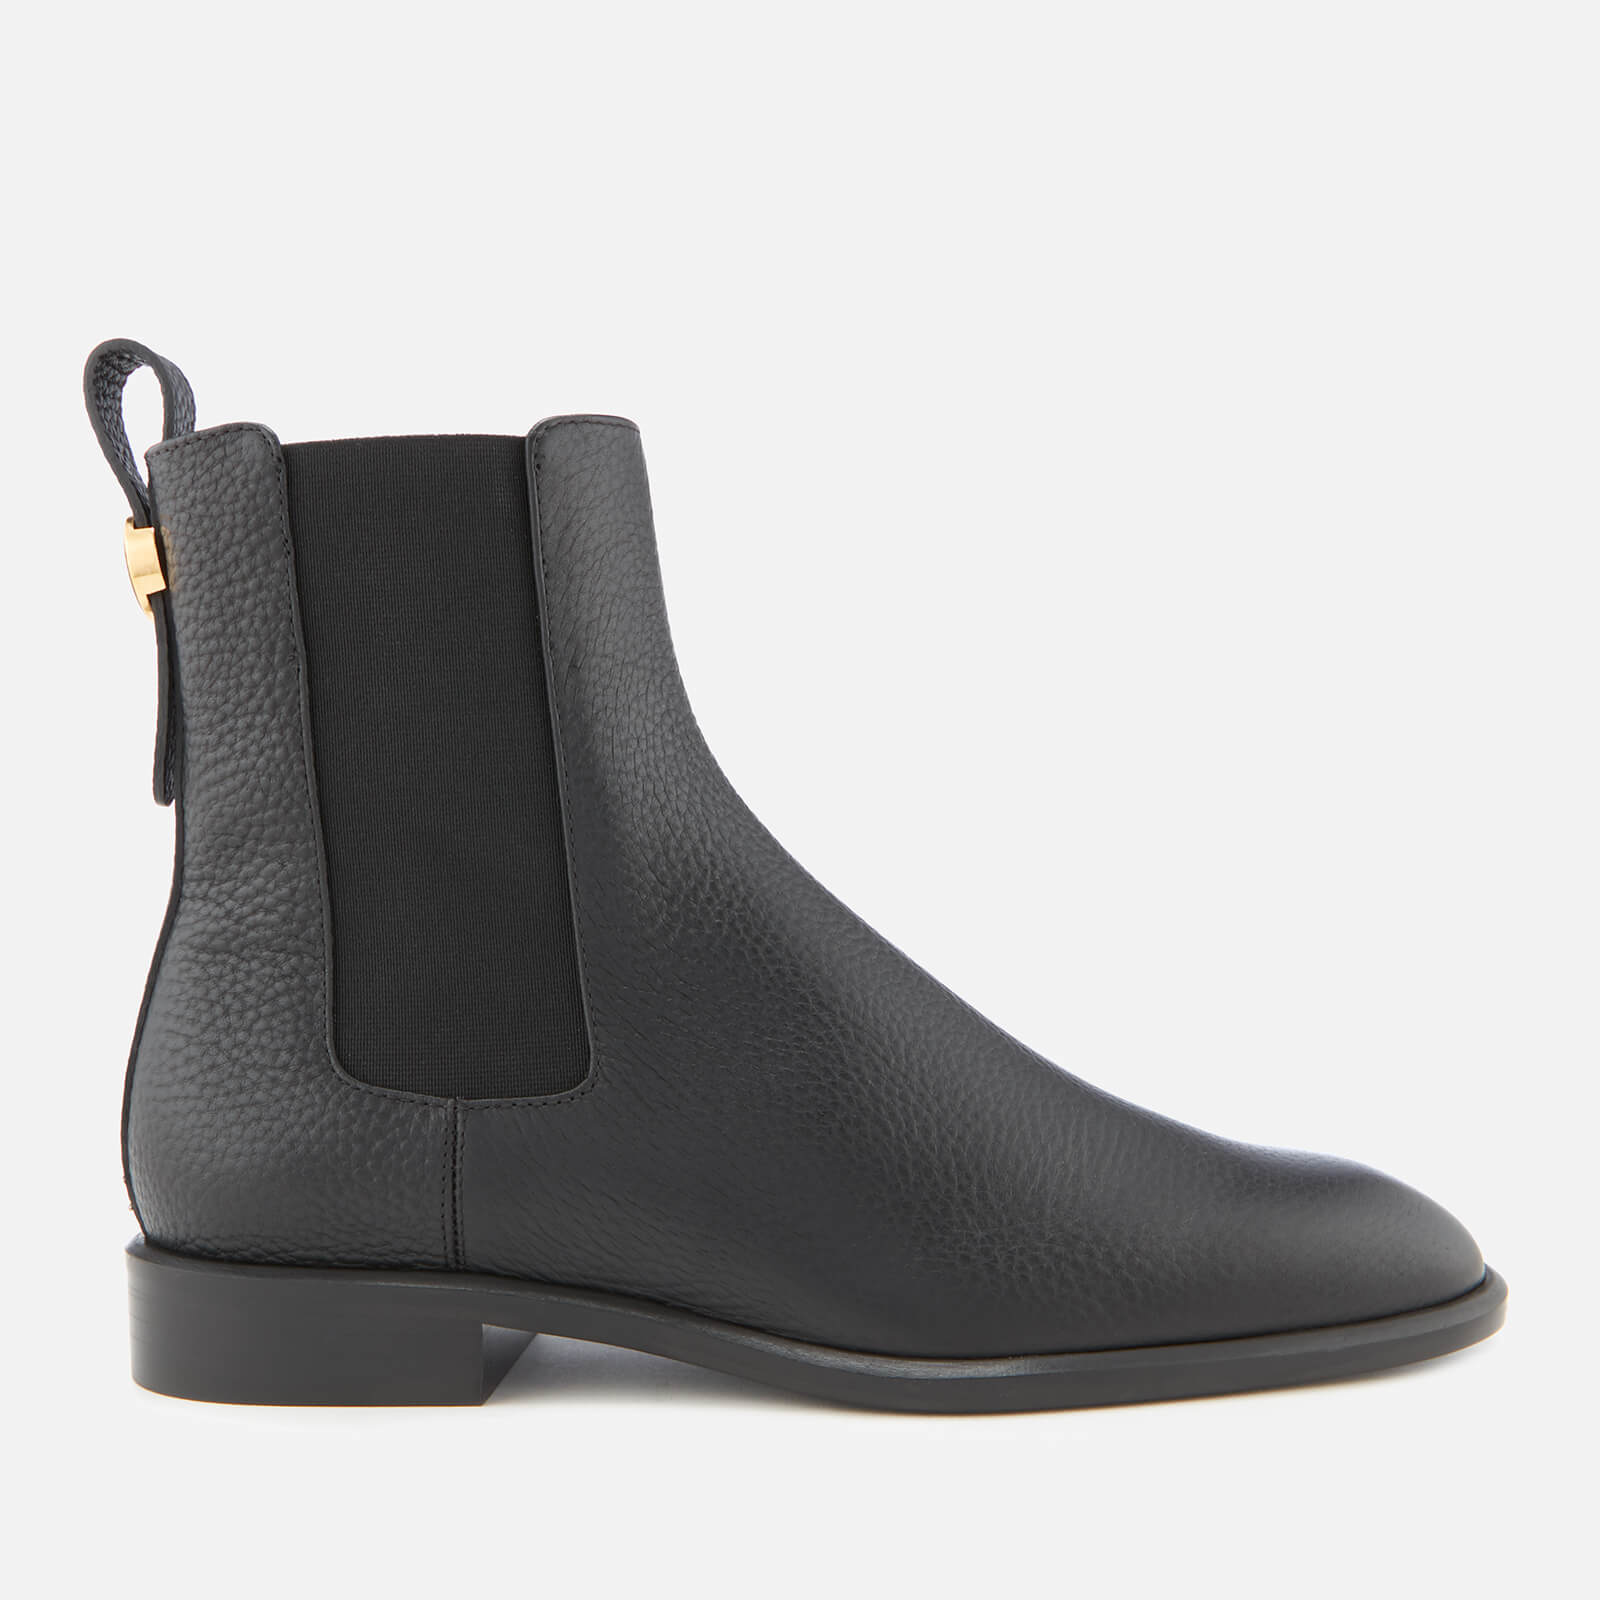 c549d9e0cb1e Mulberry Women s Leather Chelsea Boots - Black - Free UK Delivery over £50